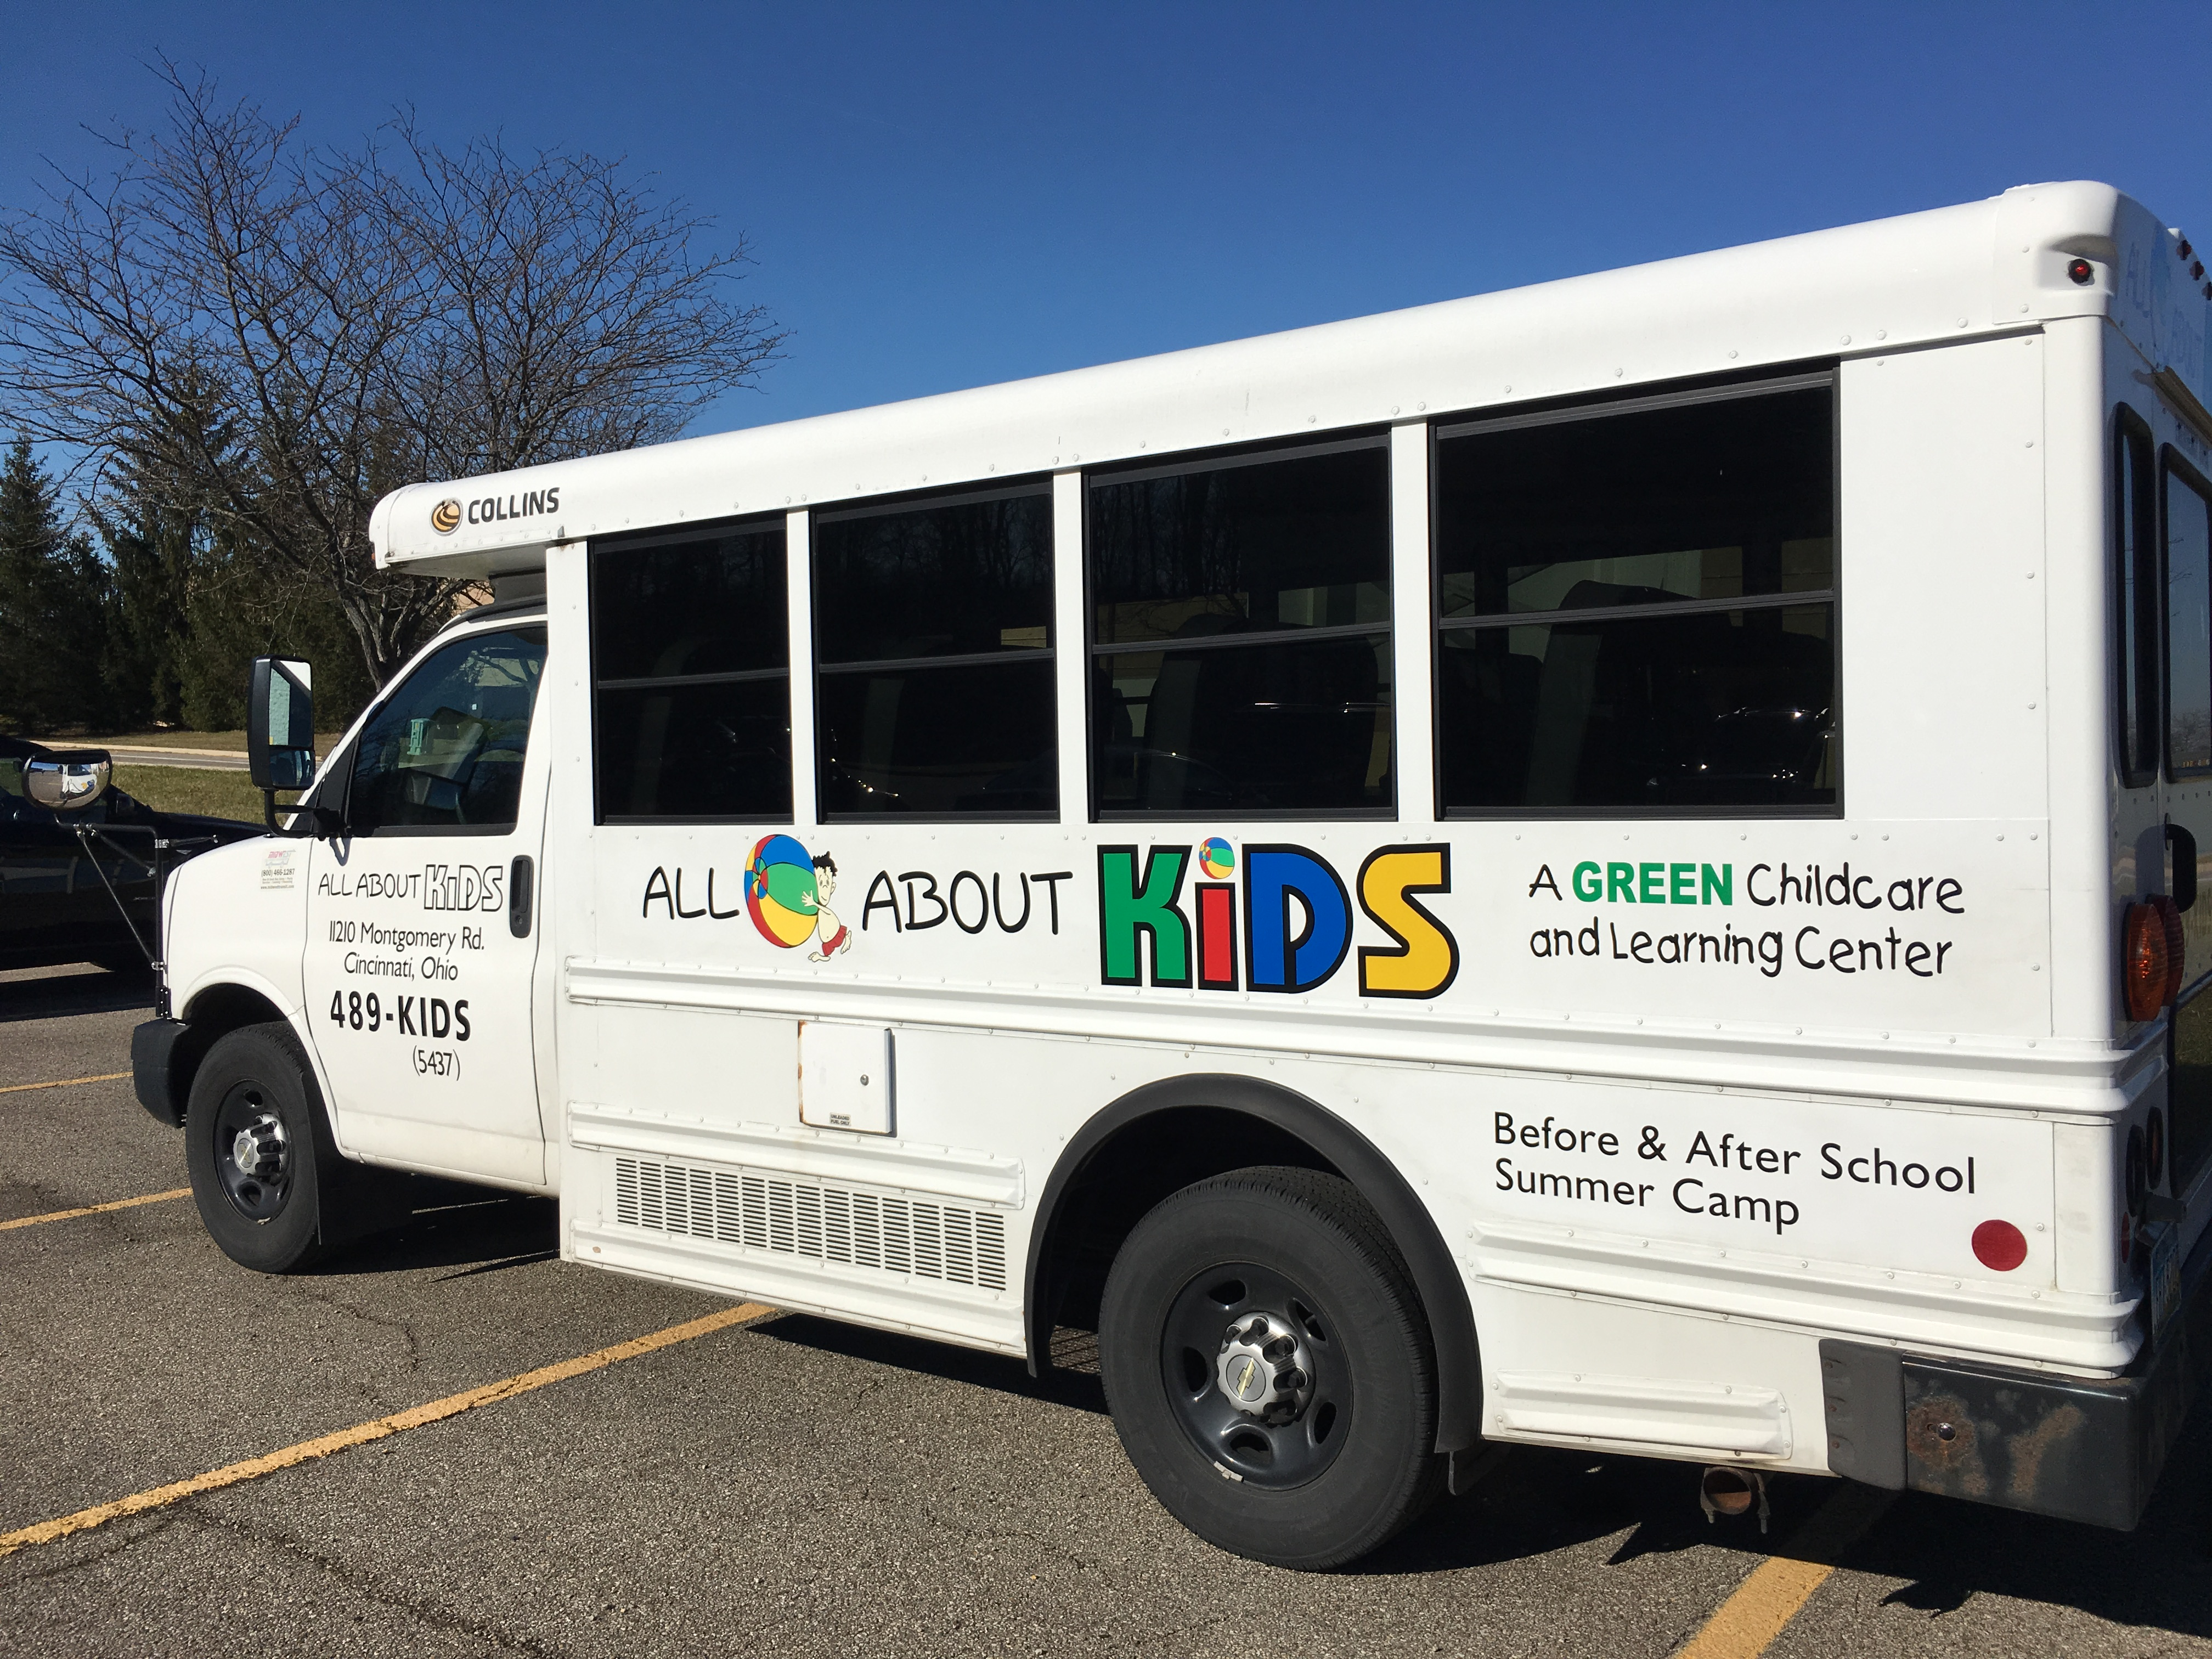 All About Kids Bus Vinyl